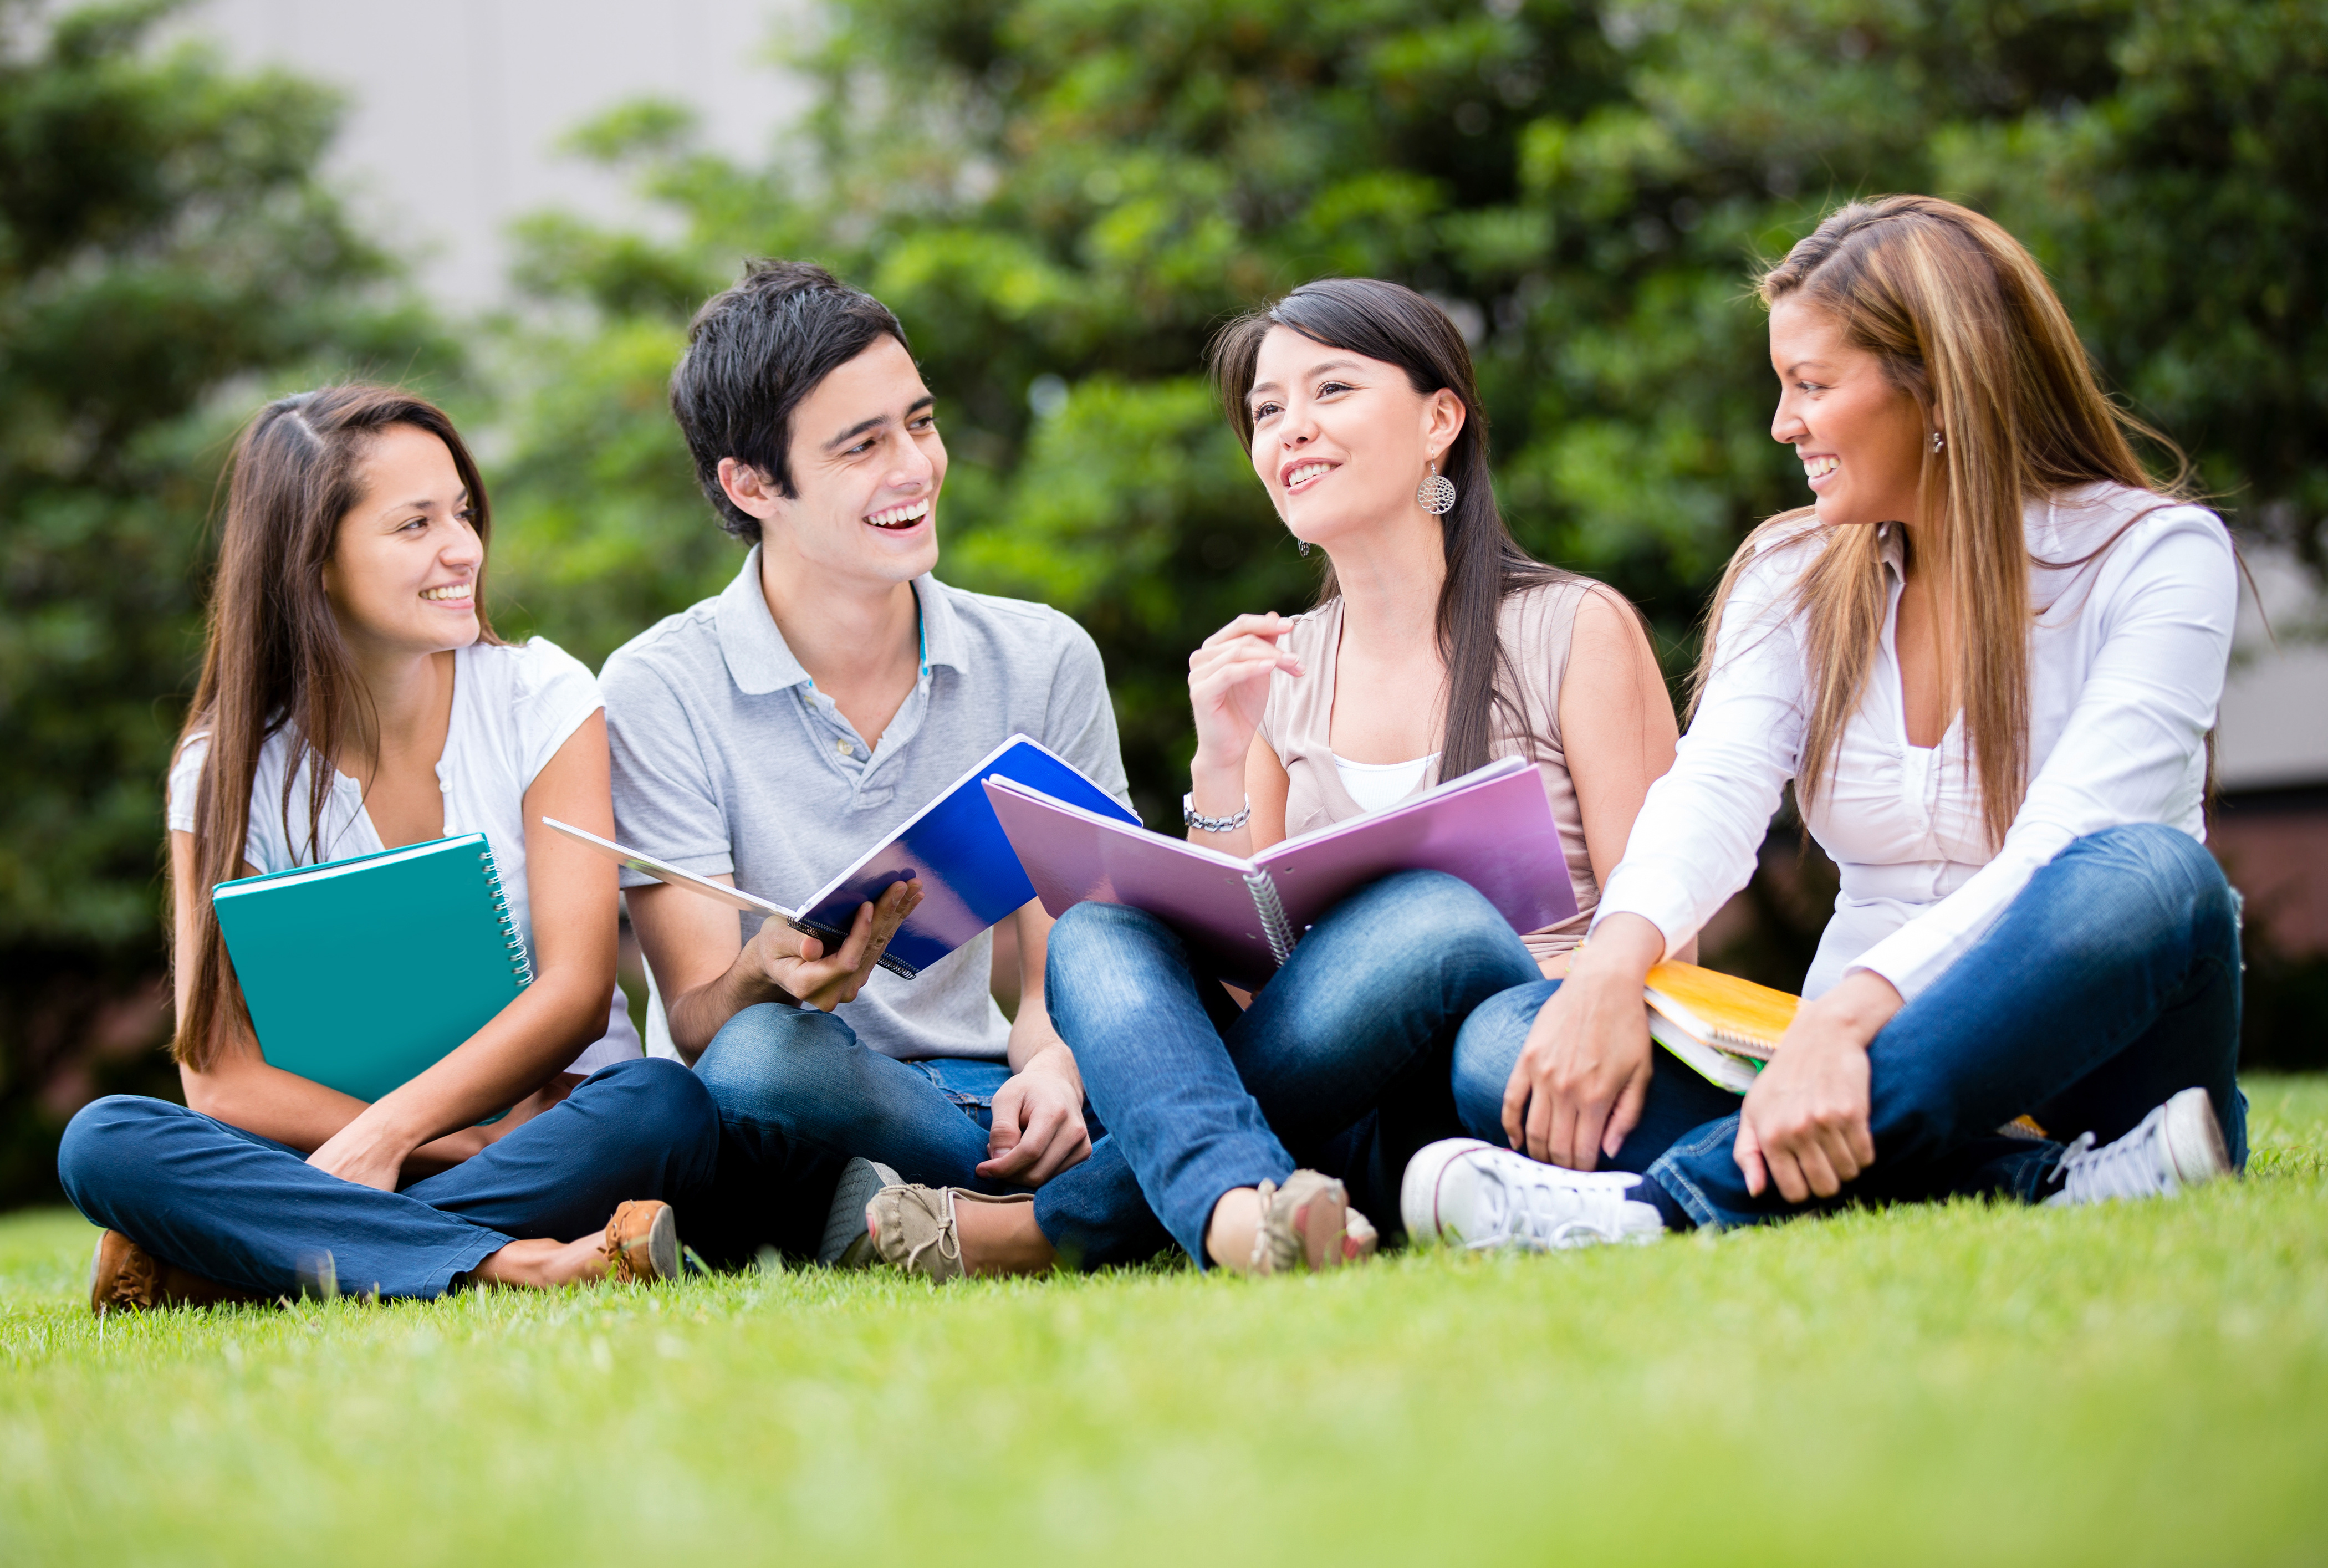 college study groups - HD2000×1347